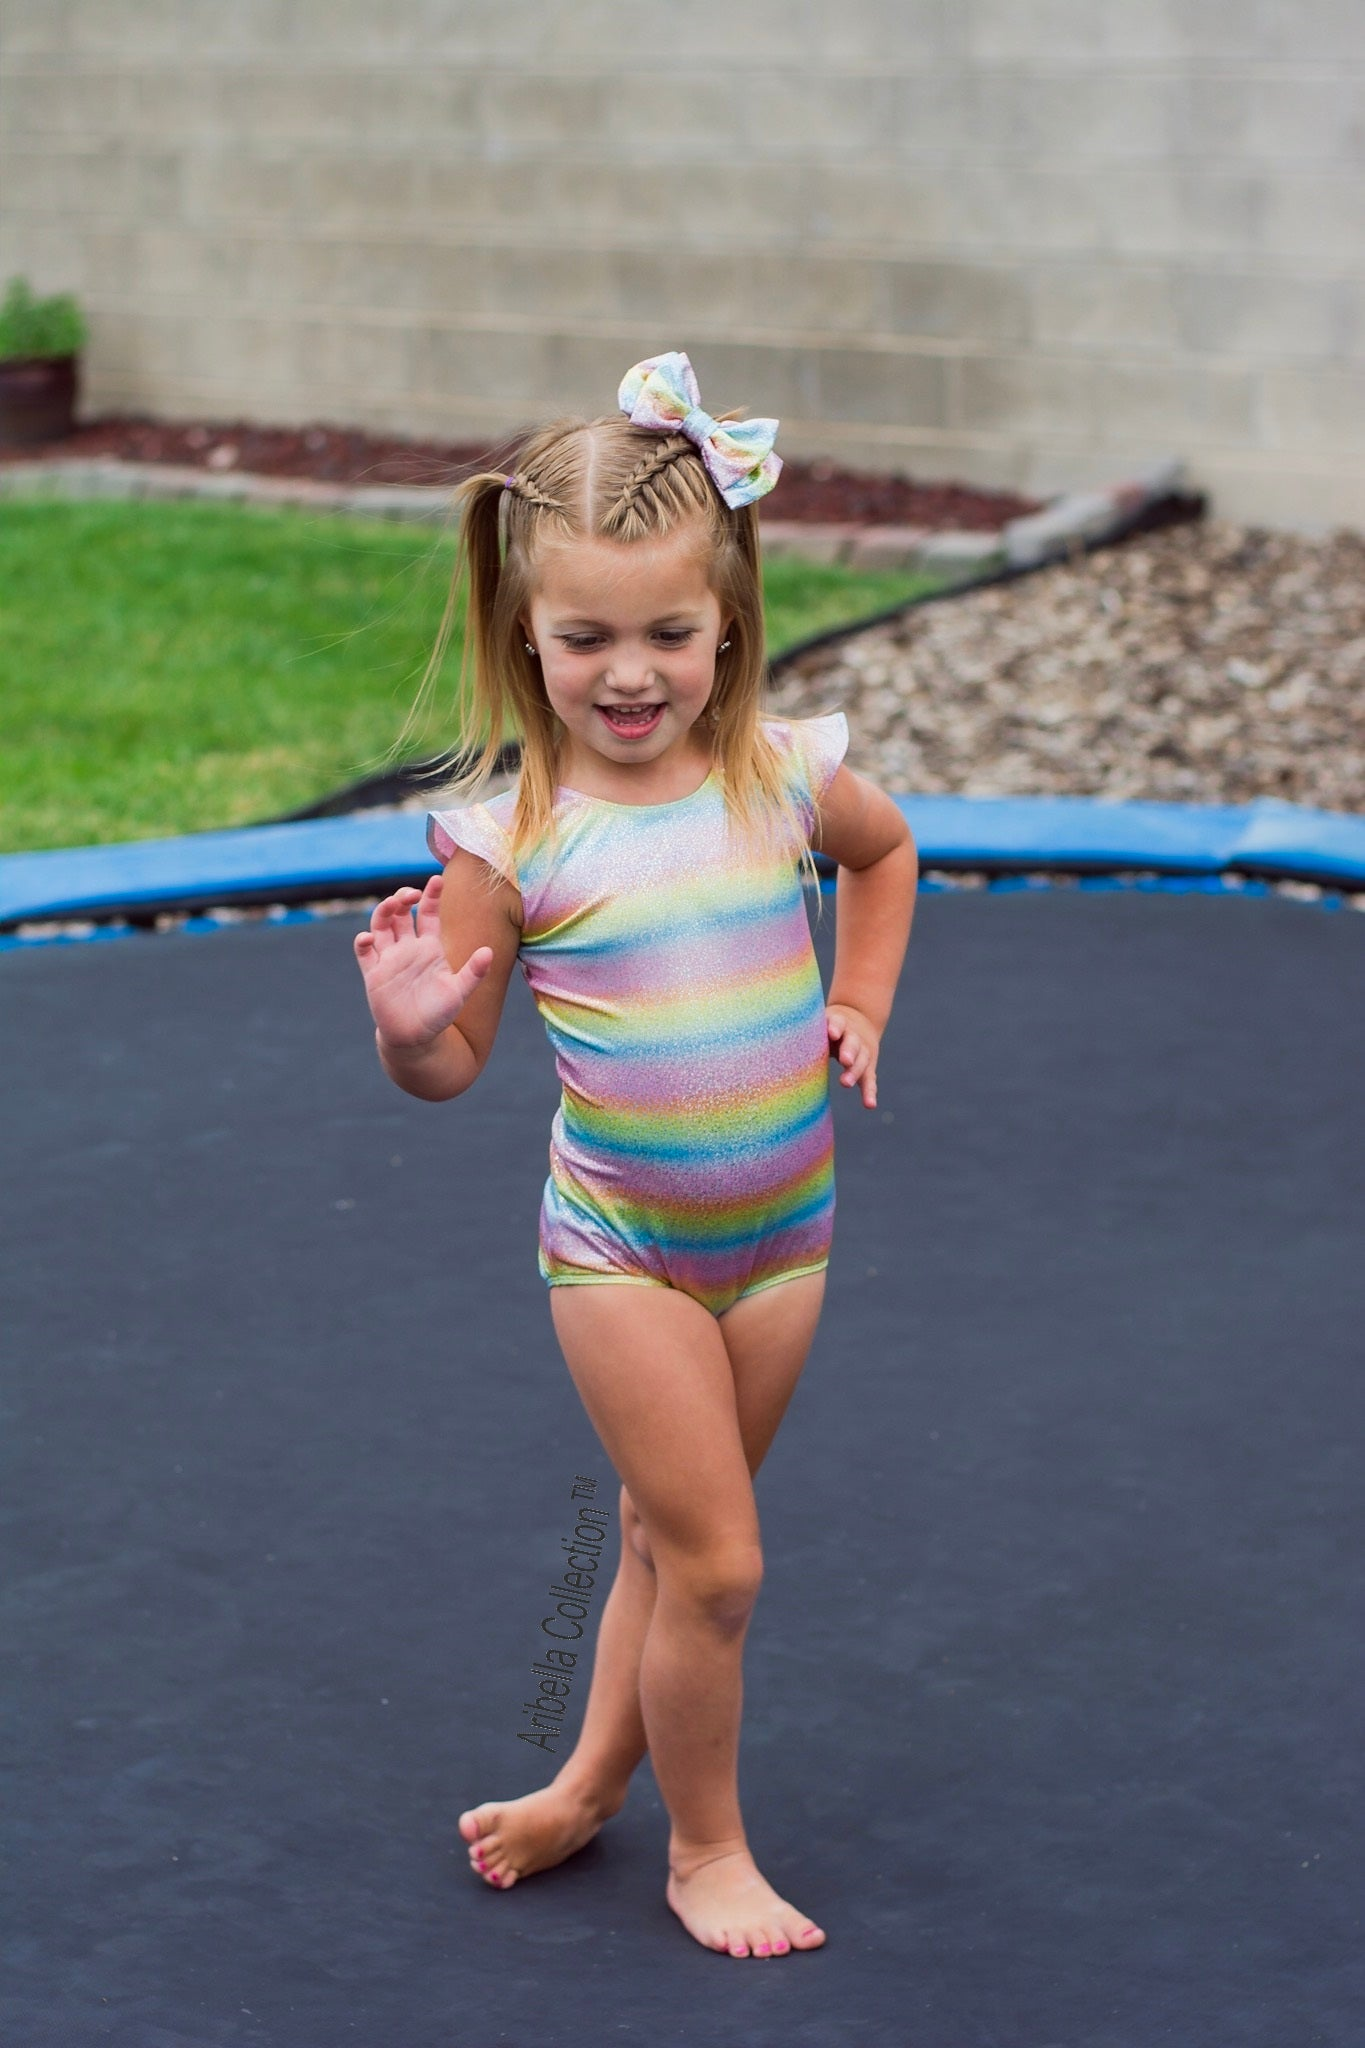 Unicorn One Piece Leotard Swimsuit - Sparkly Rainbow - Aribella Collection